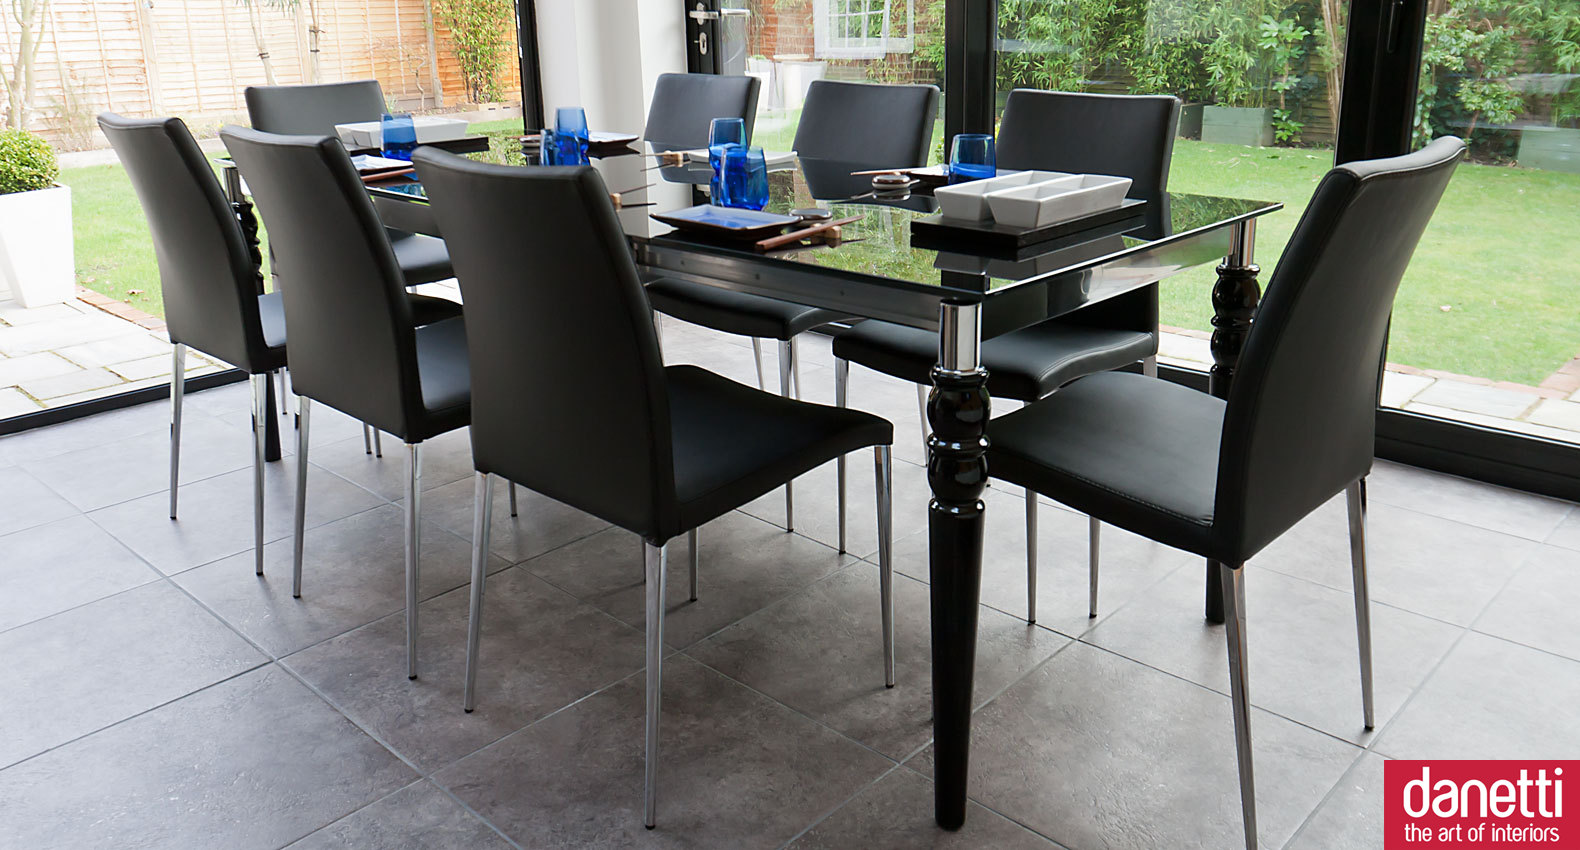 Agreeable Dining Room with expandable dining table set in black on grey ceramics floor ideas